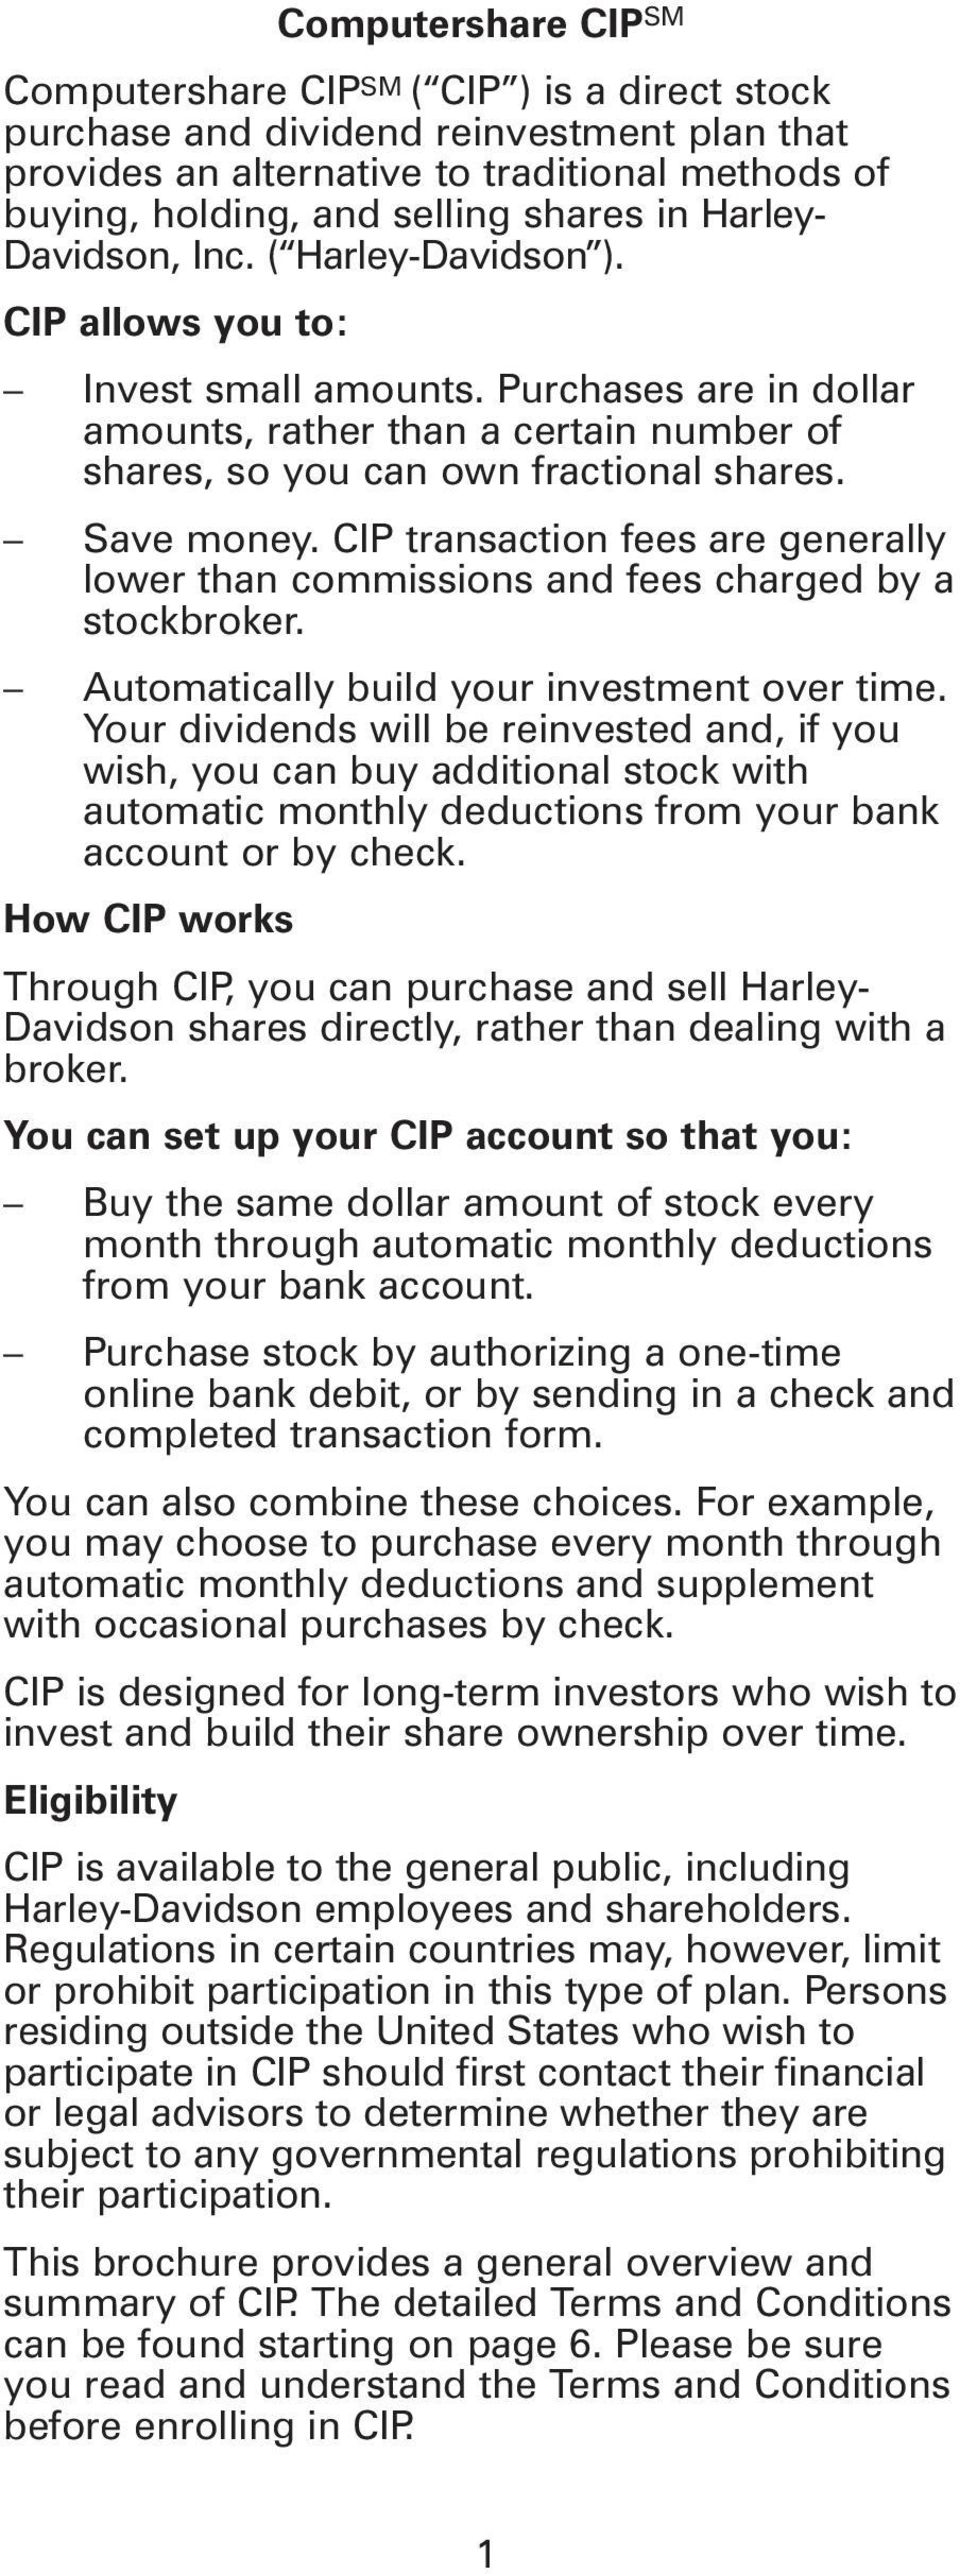 Save money. CIP transaction fees are generally lower than commissions and fees charged by a stockbroker. Automatically build your investment over time.